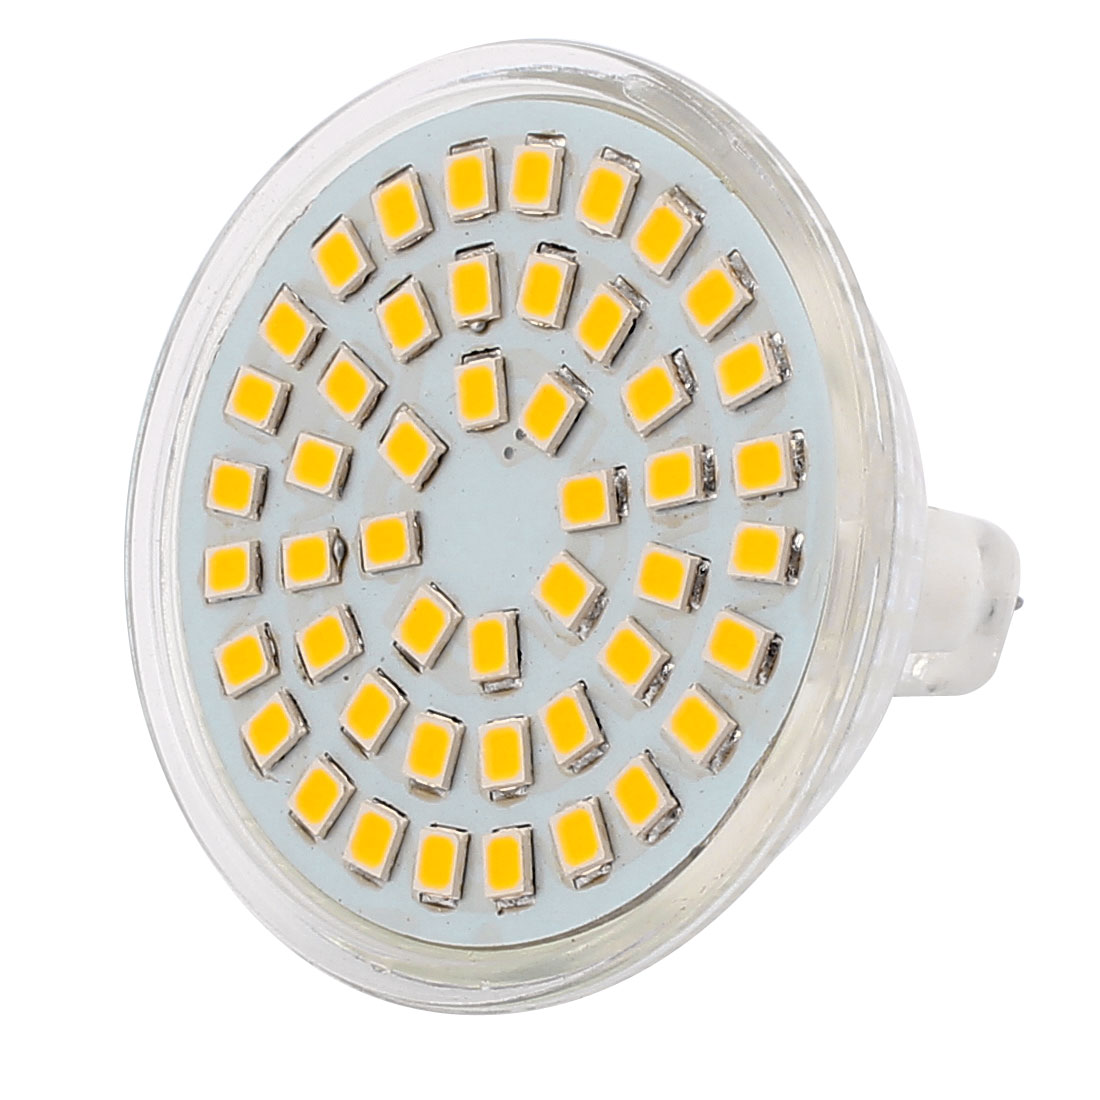 MR16 SMD 2835 48 LEDs Glass Energy-Saving LED Lamp Bulb Warm White AC 110V 4W